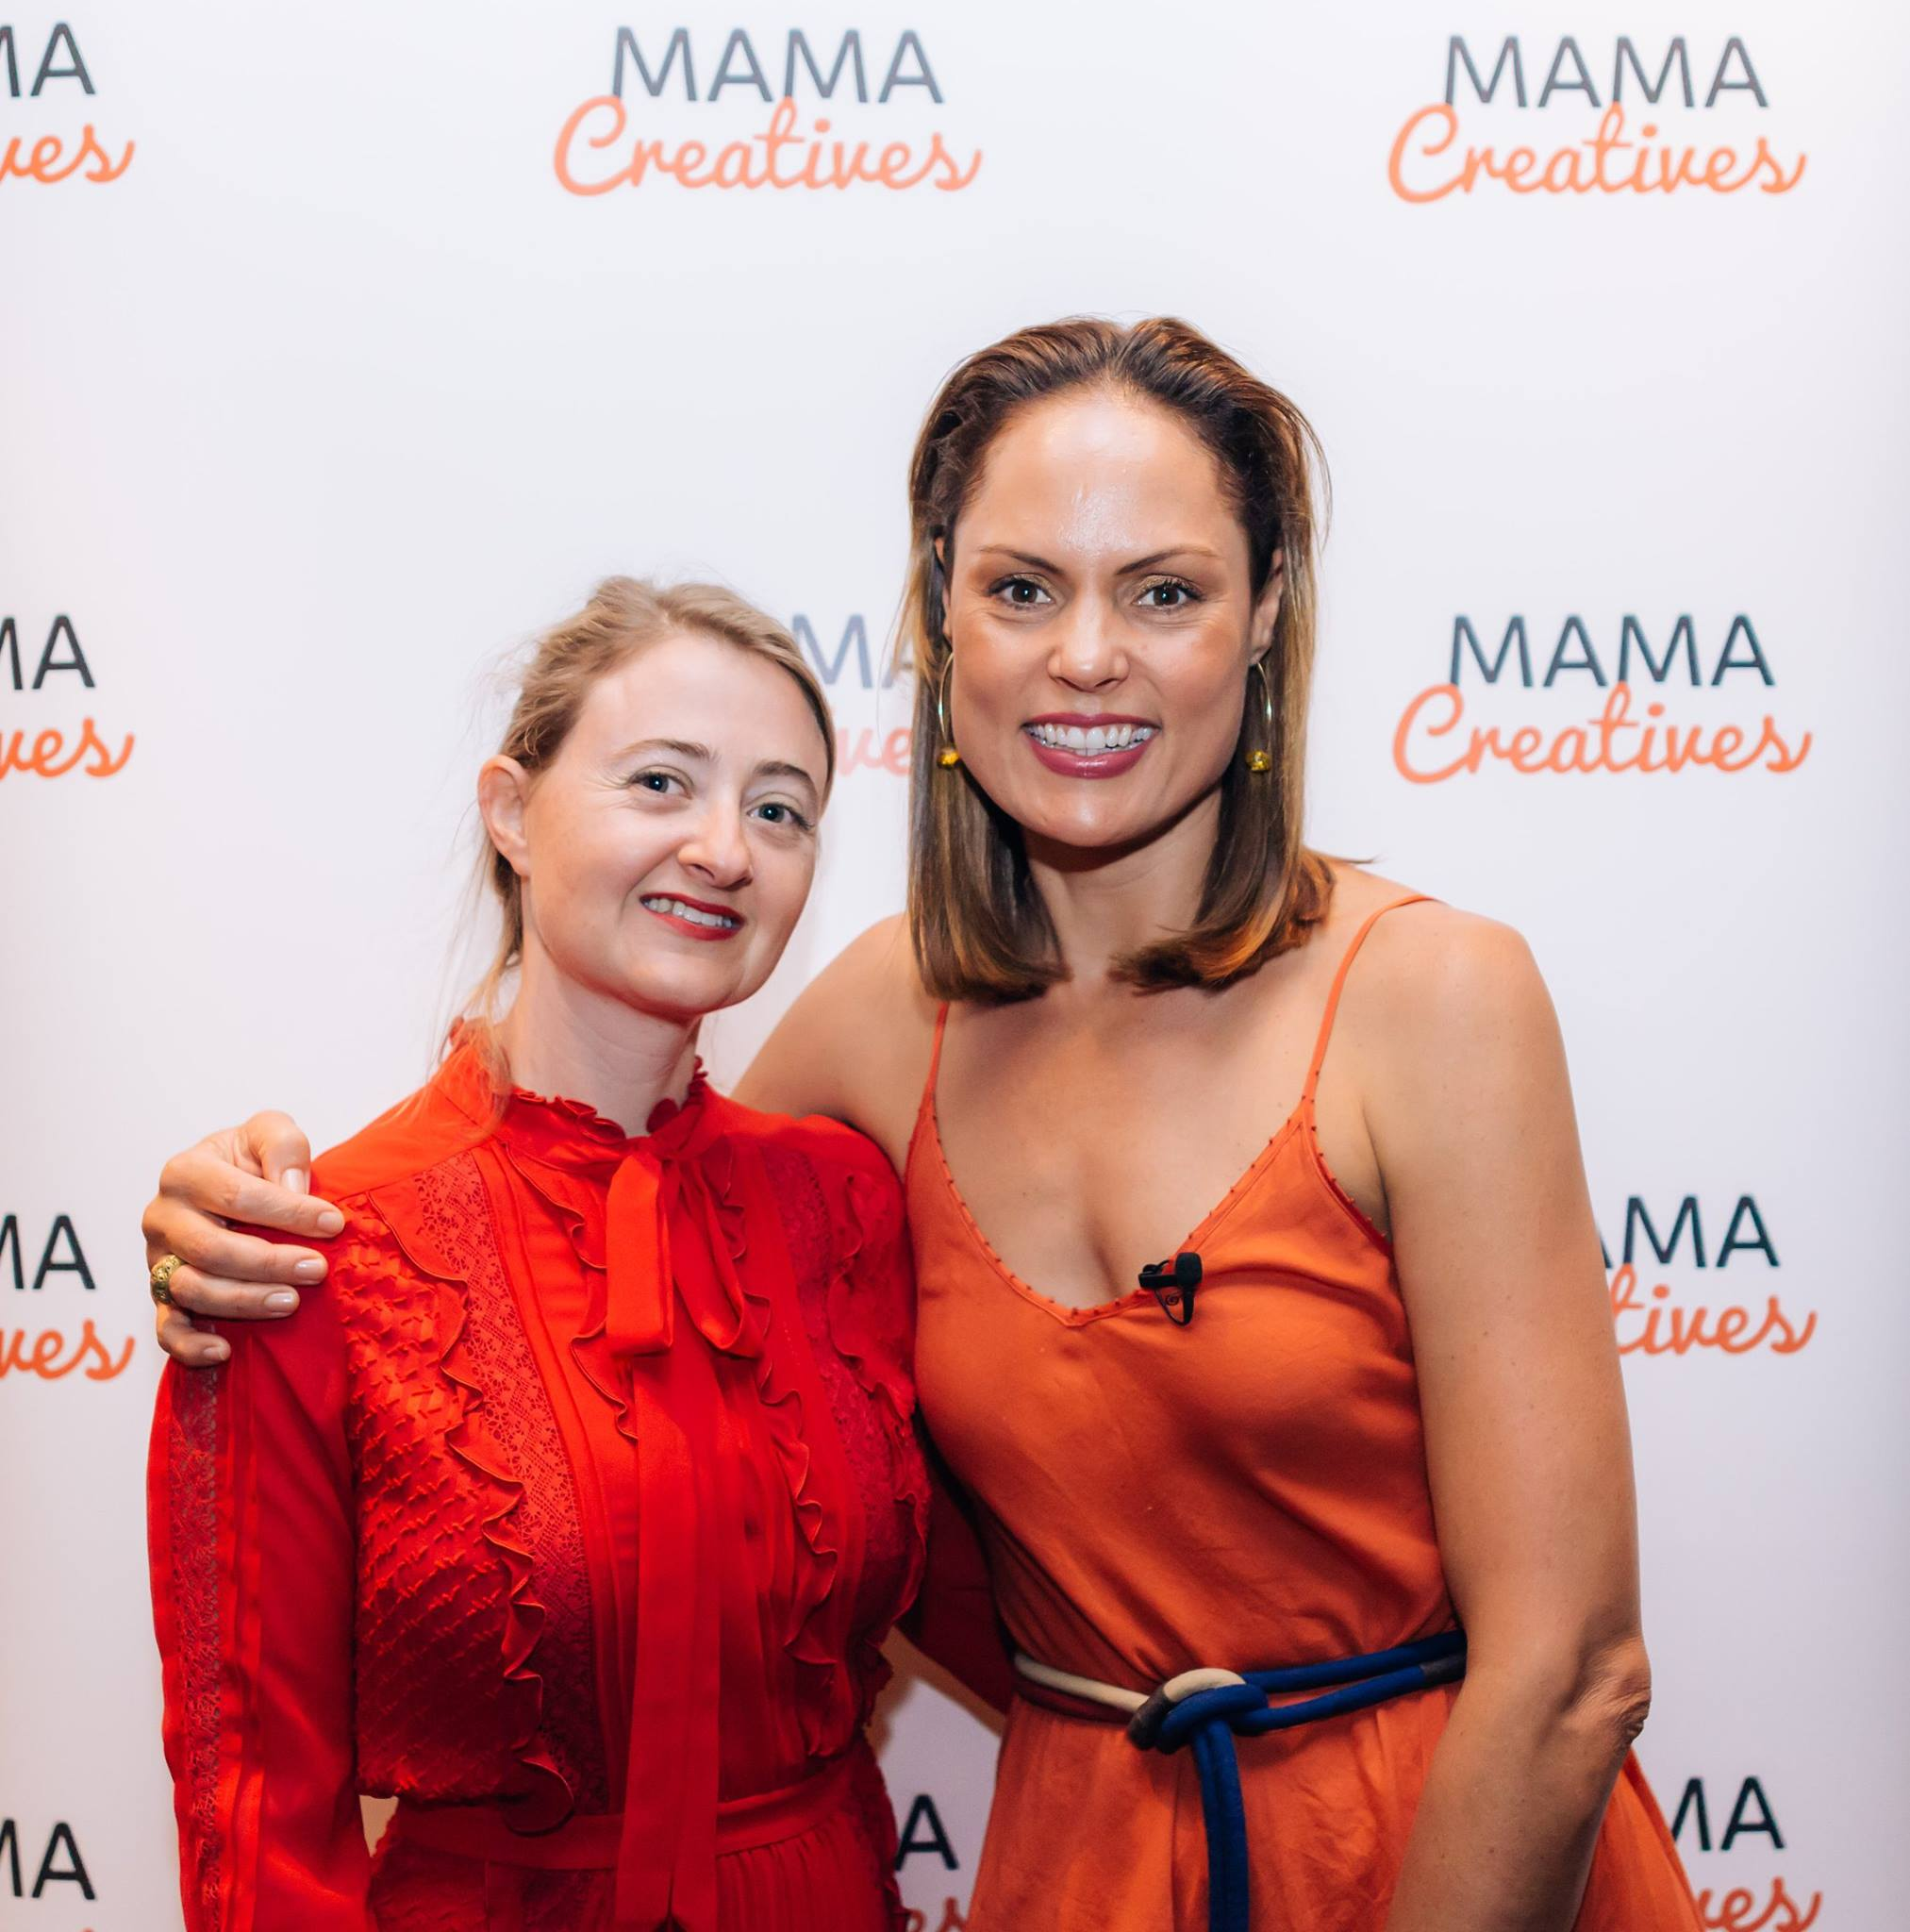 With the truly inspiring Zoe Bingley-Pullin, chef, nutritionist, TV presenter and author of the fabulous cookbook 'Falling in Love with Food', who brought love and warmth to our Mother's Day Celebration.